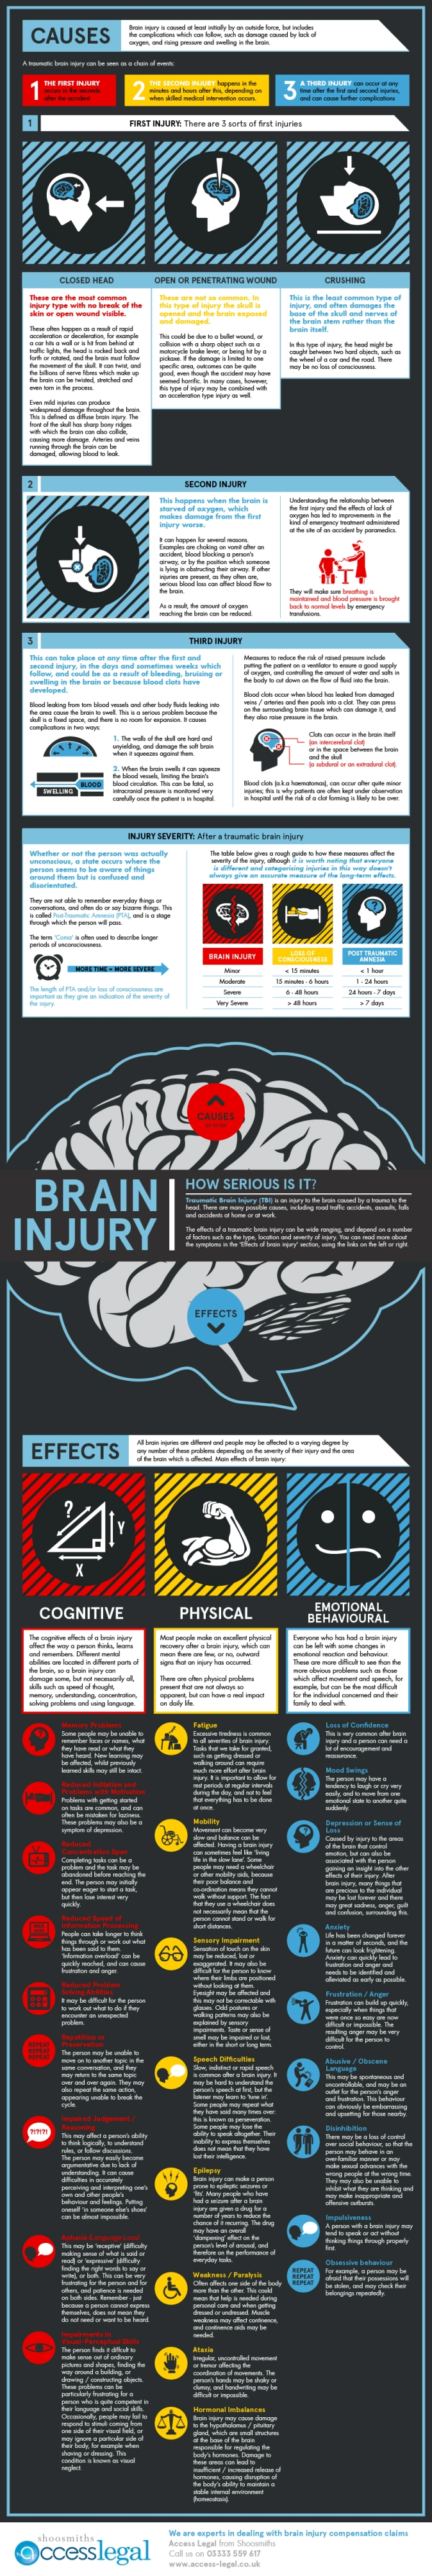 brain-injury--how-serious-is-it_5061954cebacb